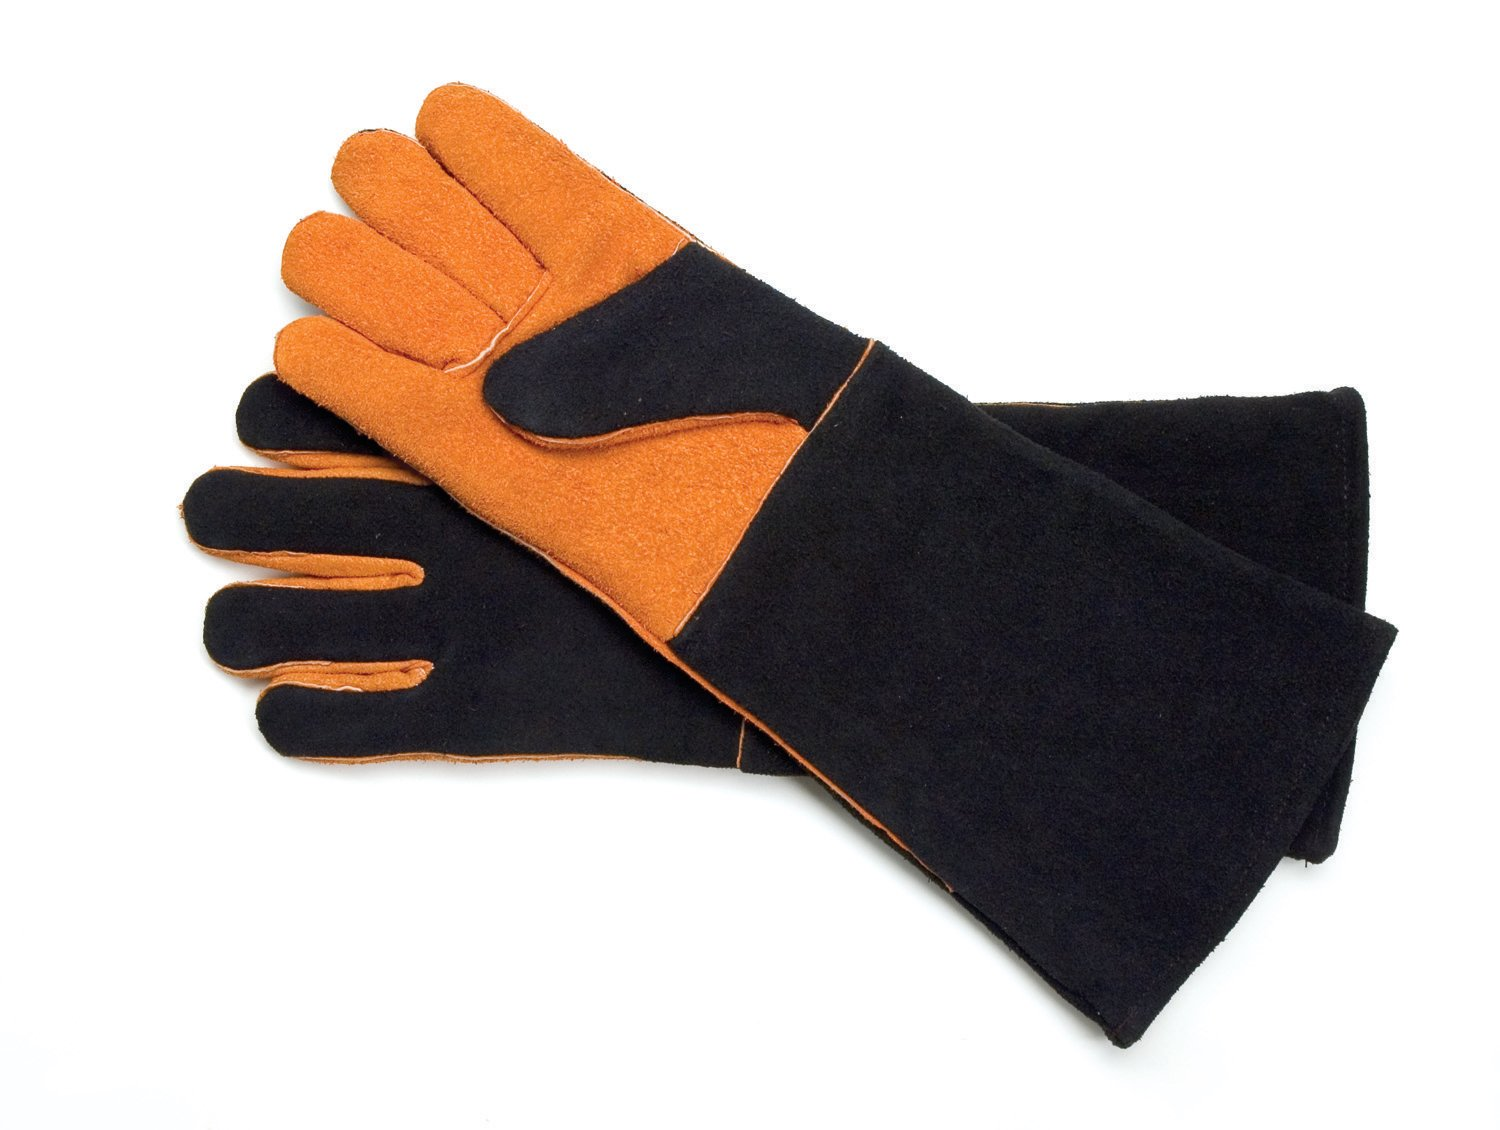 Steven Raichlen Best of Barbecue Extra Long Suede Grill Gloves (Pair) - SR8038